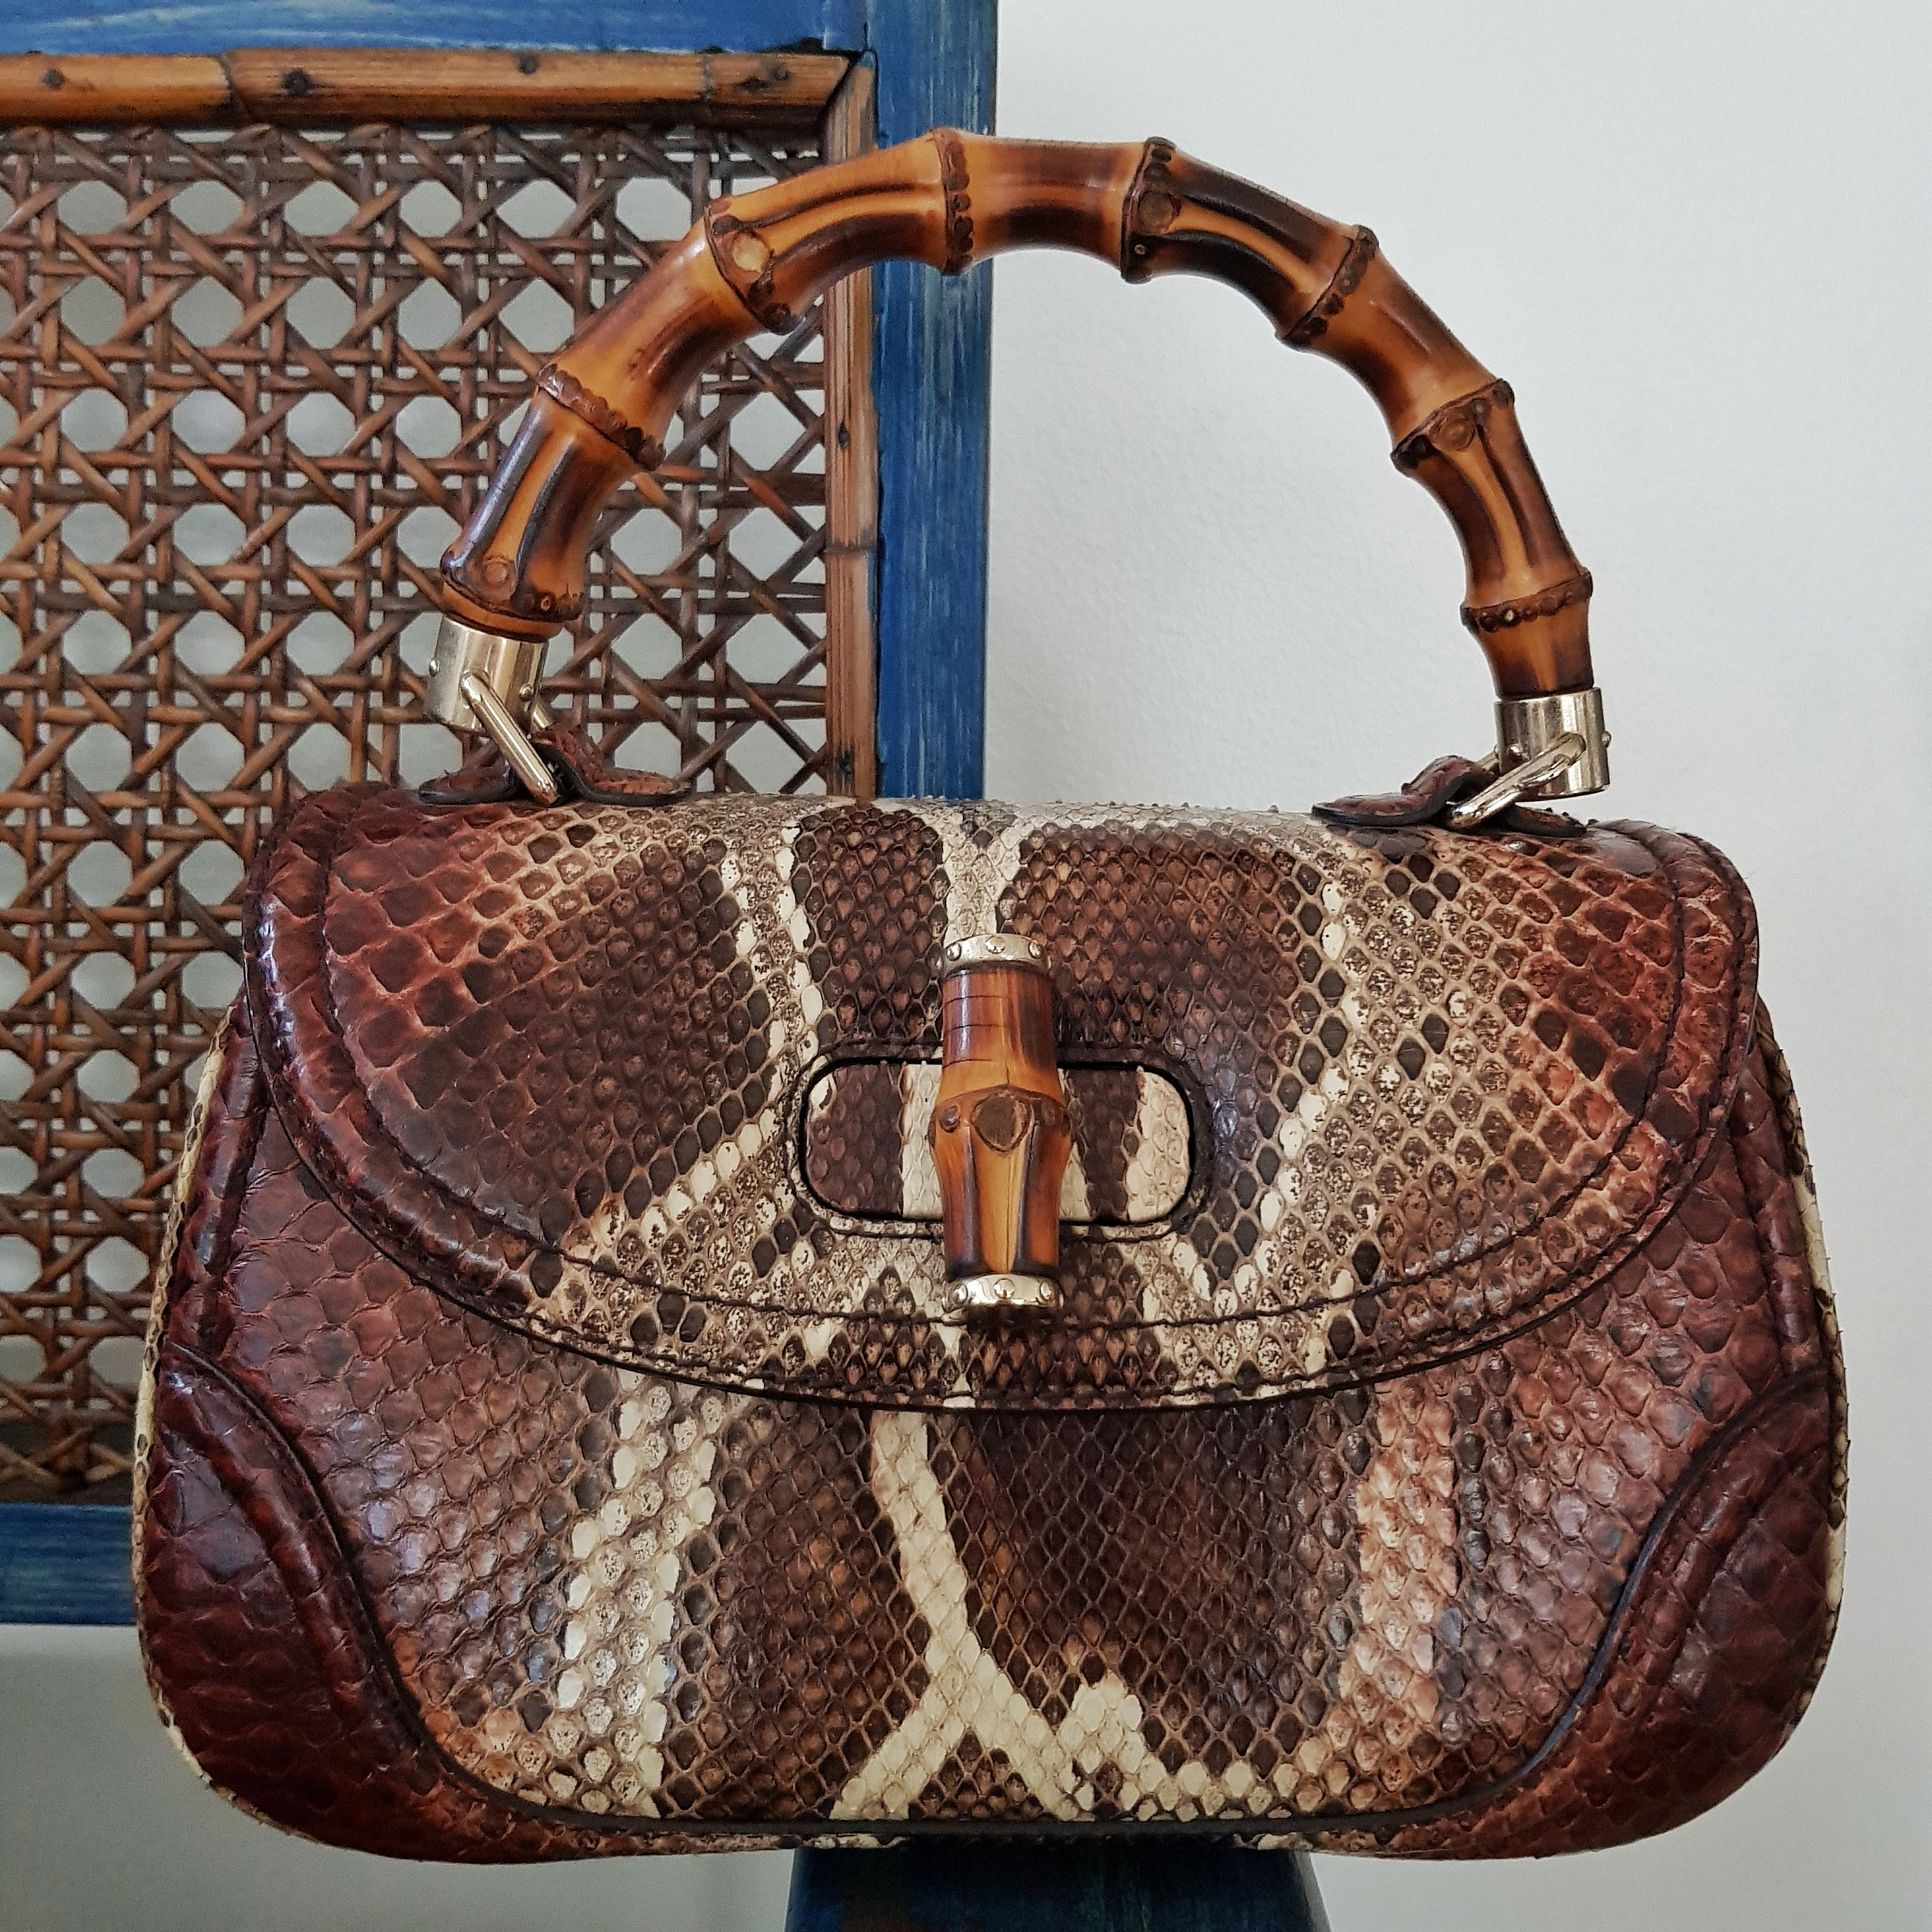 6f51e3912f Timeless Bag Styles  It s All About Longevity – The Bag Hag Diaries